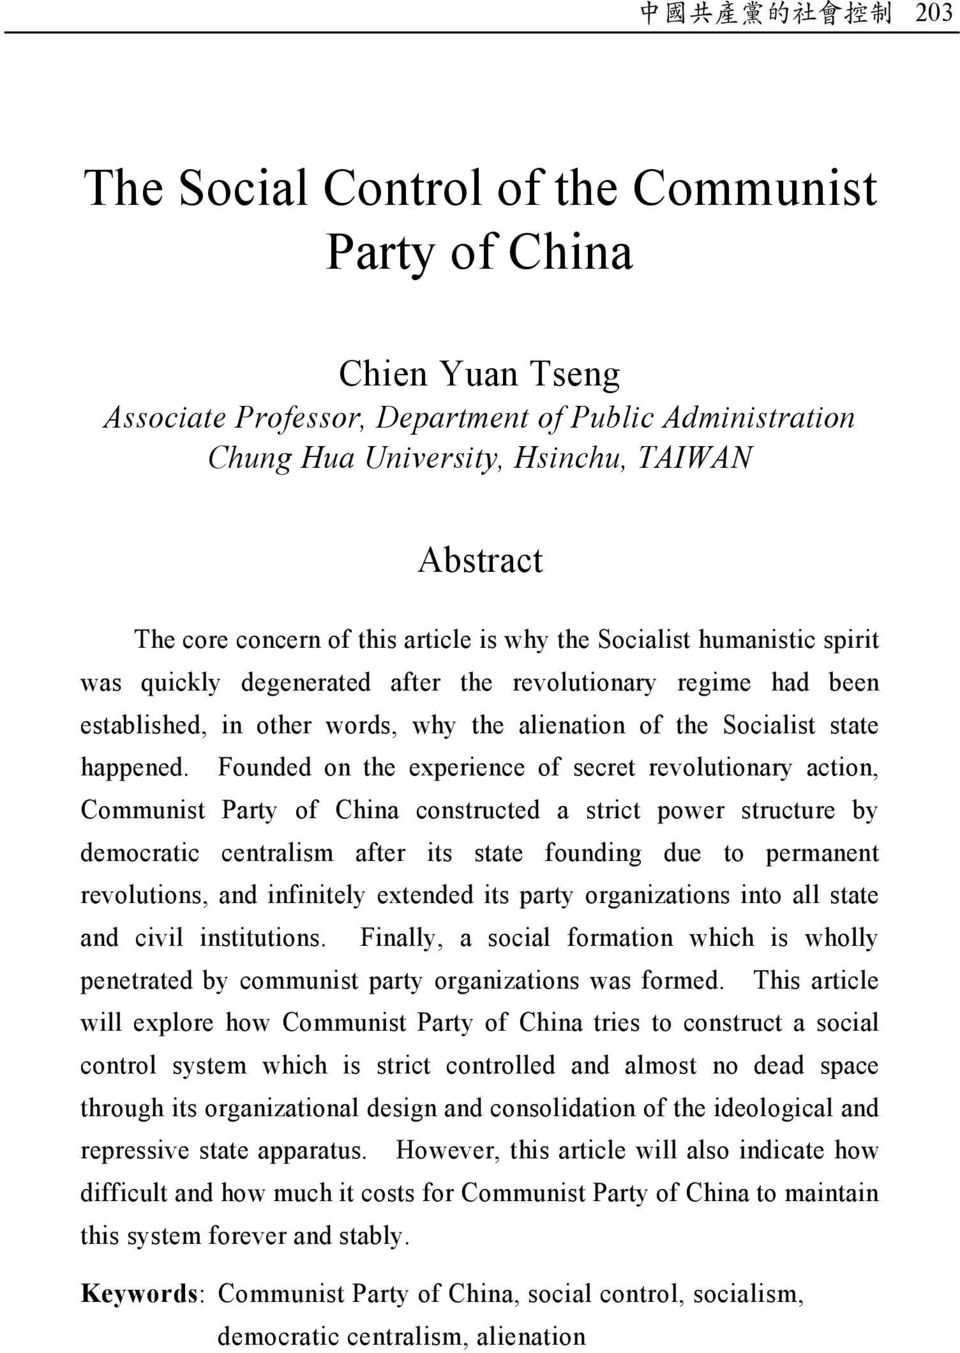 Founded on the experience of secret revolutionary action, Communist Party of China constructed a strict power structure by democratic centralism after its state founding due to permanent revolutions,